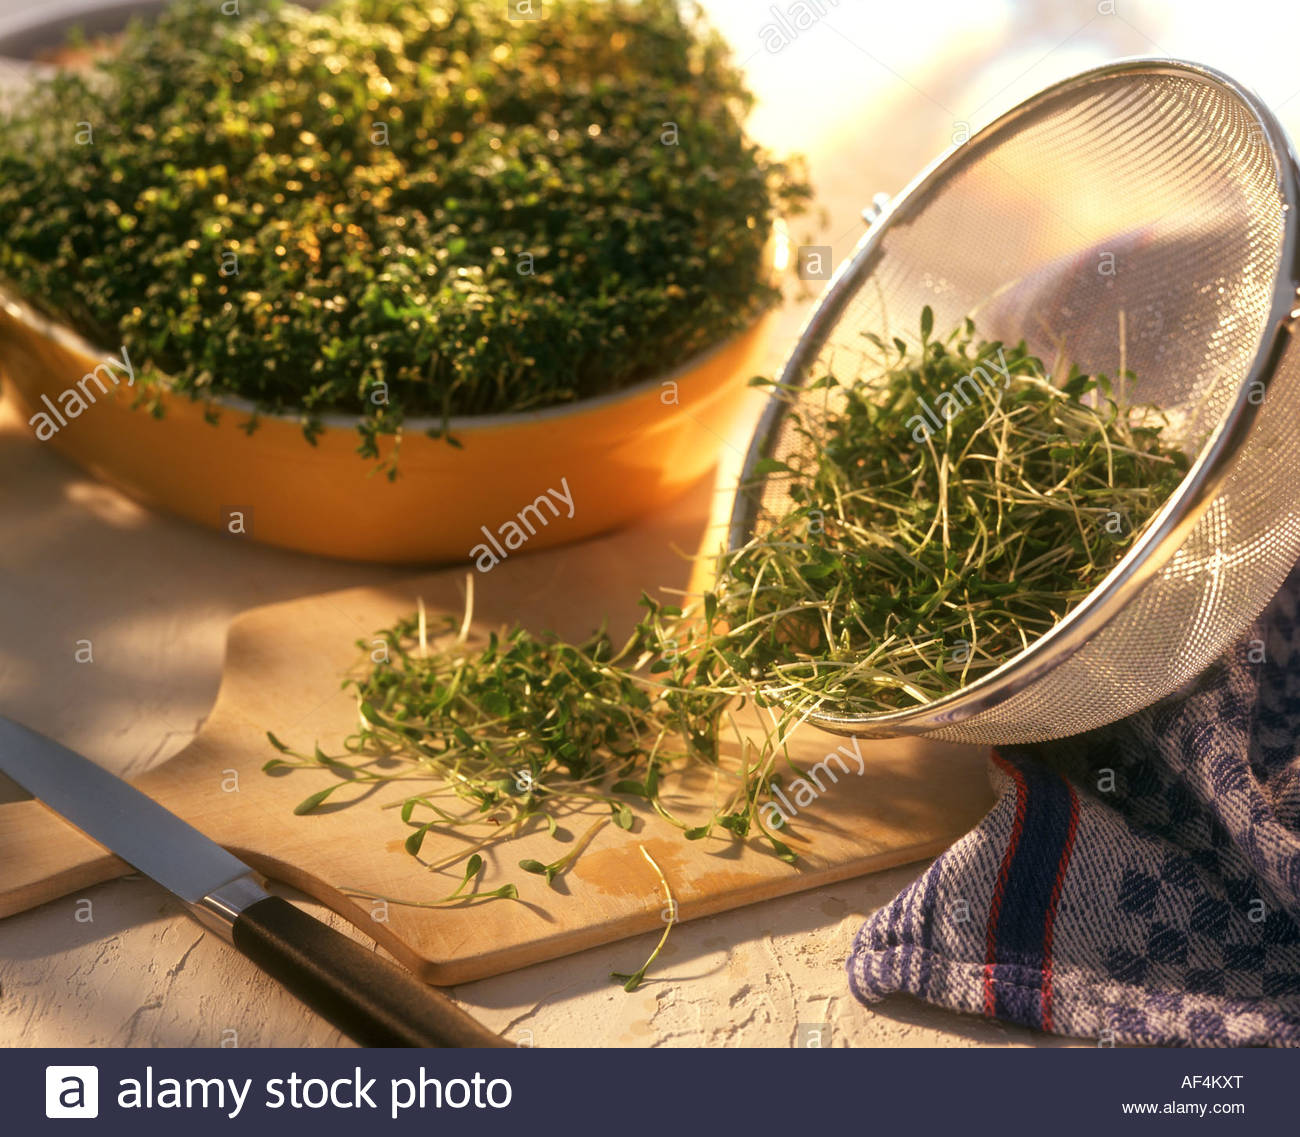 Garden cress in sieve, on wooden board and in a bowl Stock Photo ...